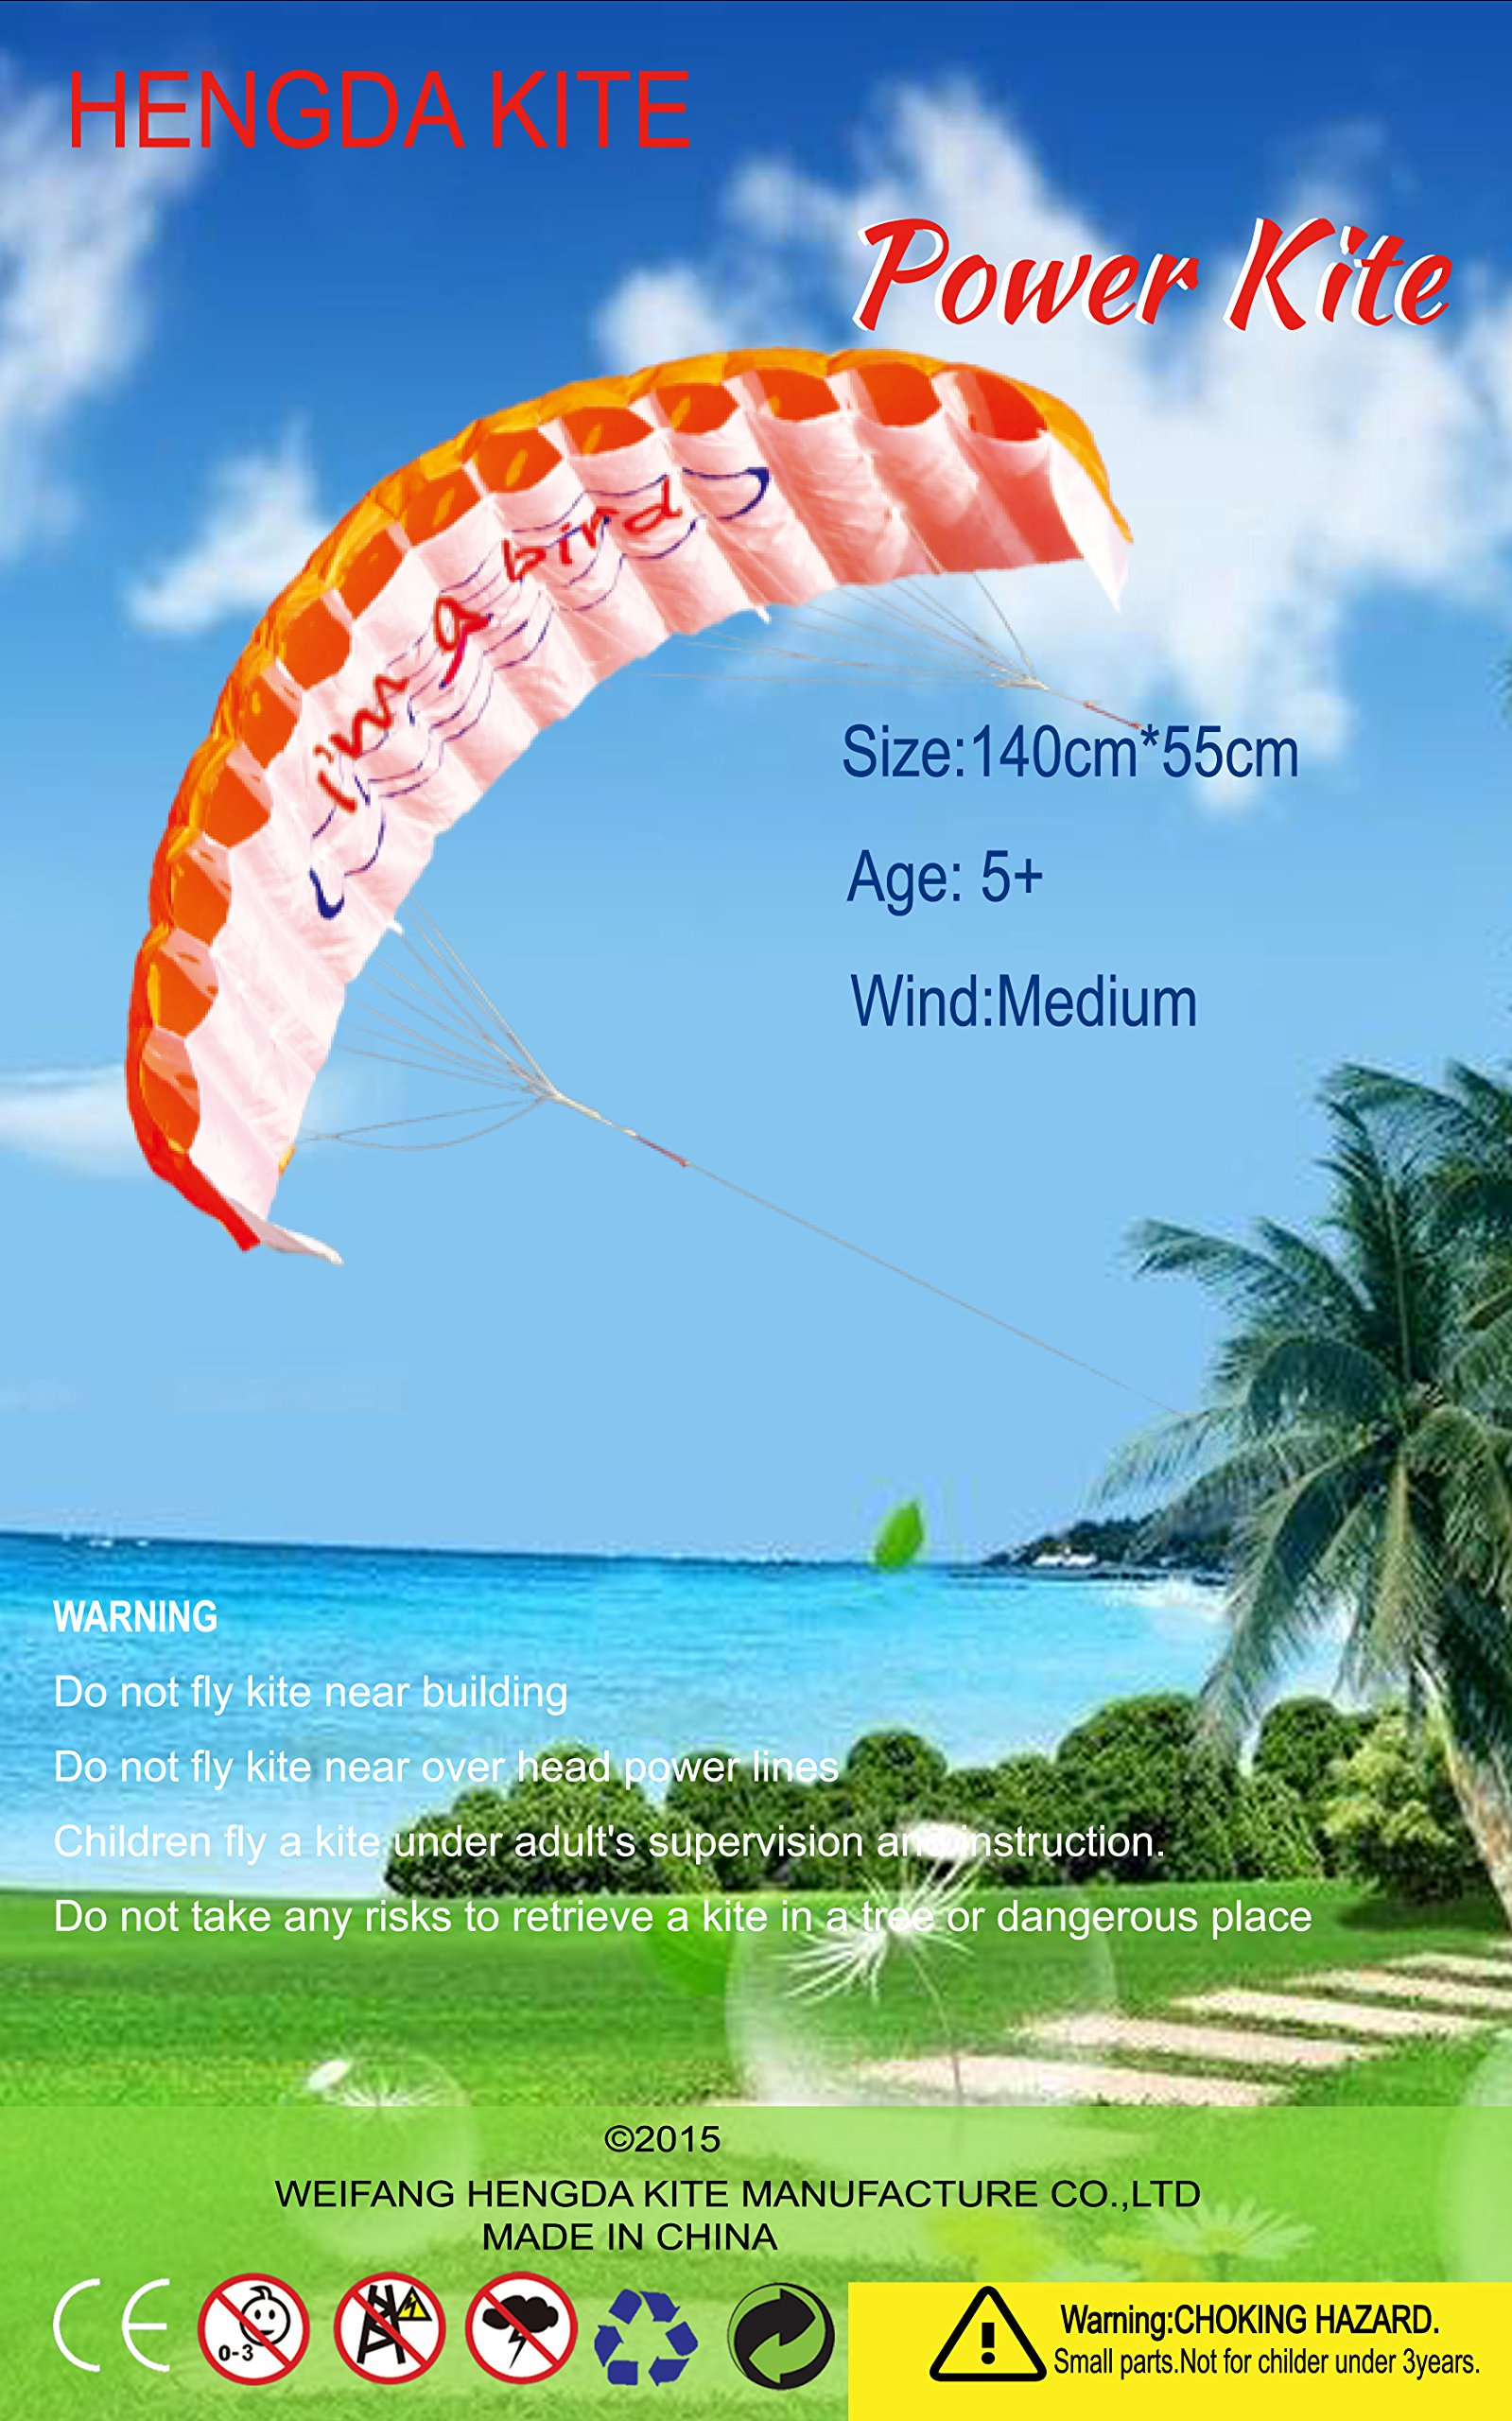 Hengda Kite NEW 1.4m Power Kite Outdoor FUN Toys Parafoil Parachute Dual Line Surfing ORANGE by Hengda kite (Image #7)